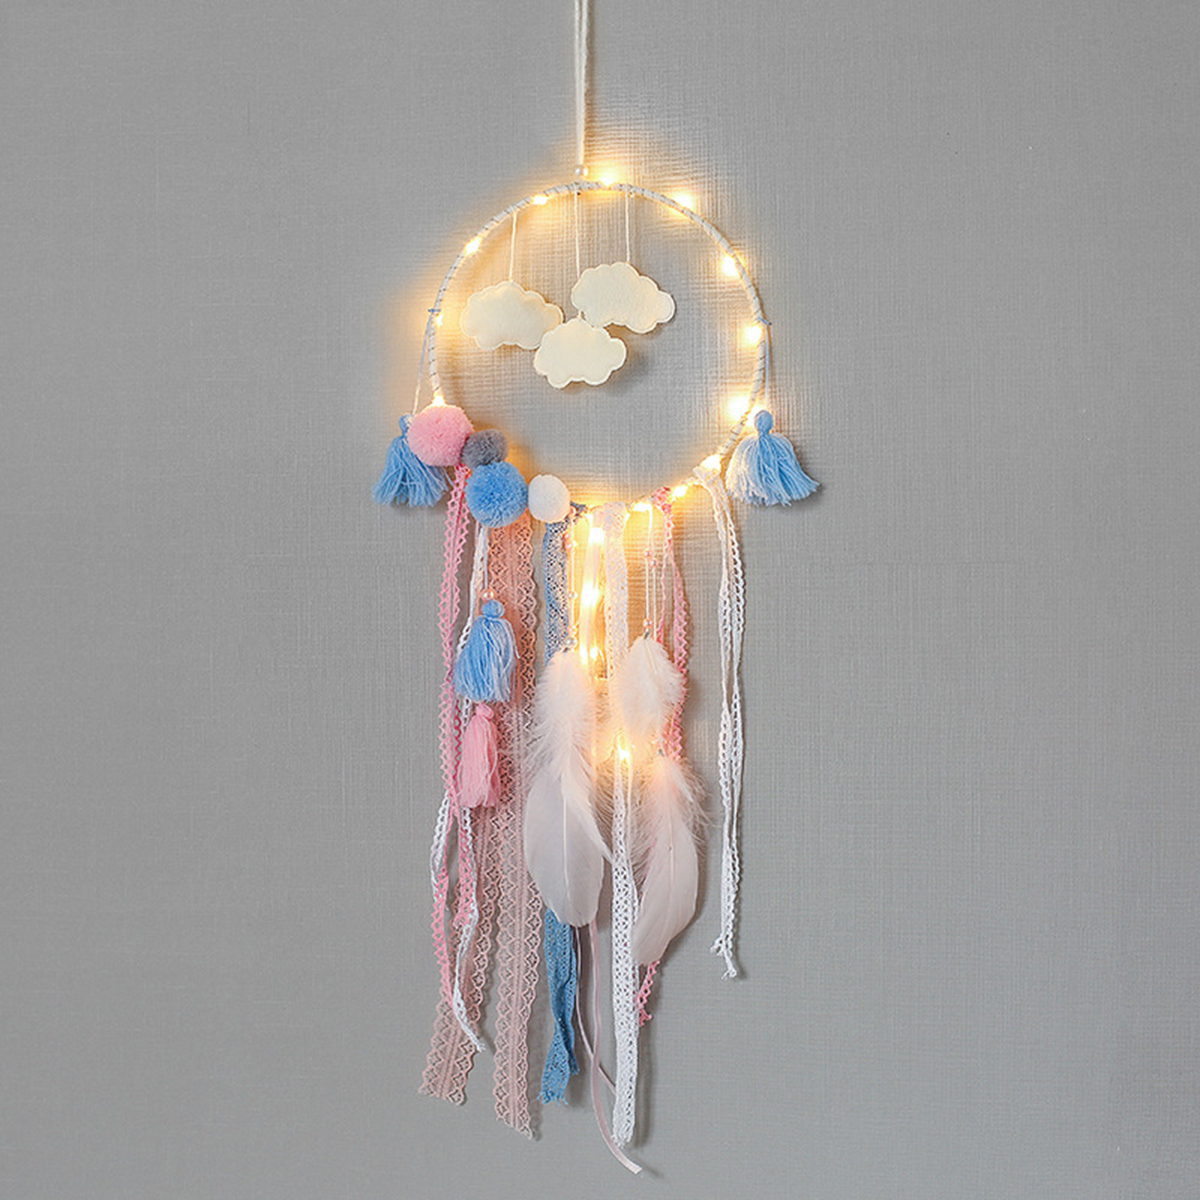 Lighting LED Dreamcatcher Feather Pendant Dream Catcher House Decor Accessary Light